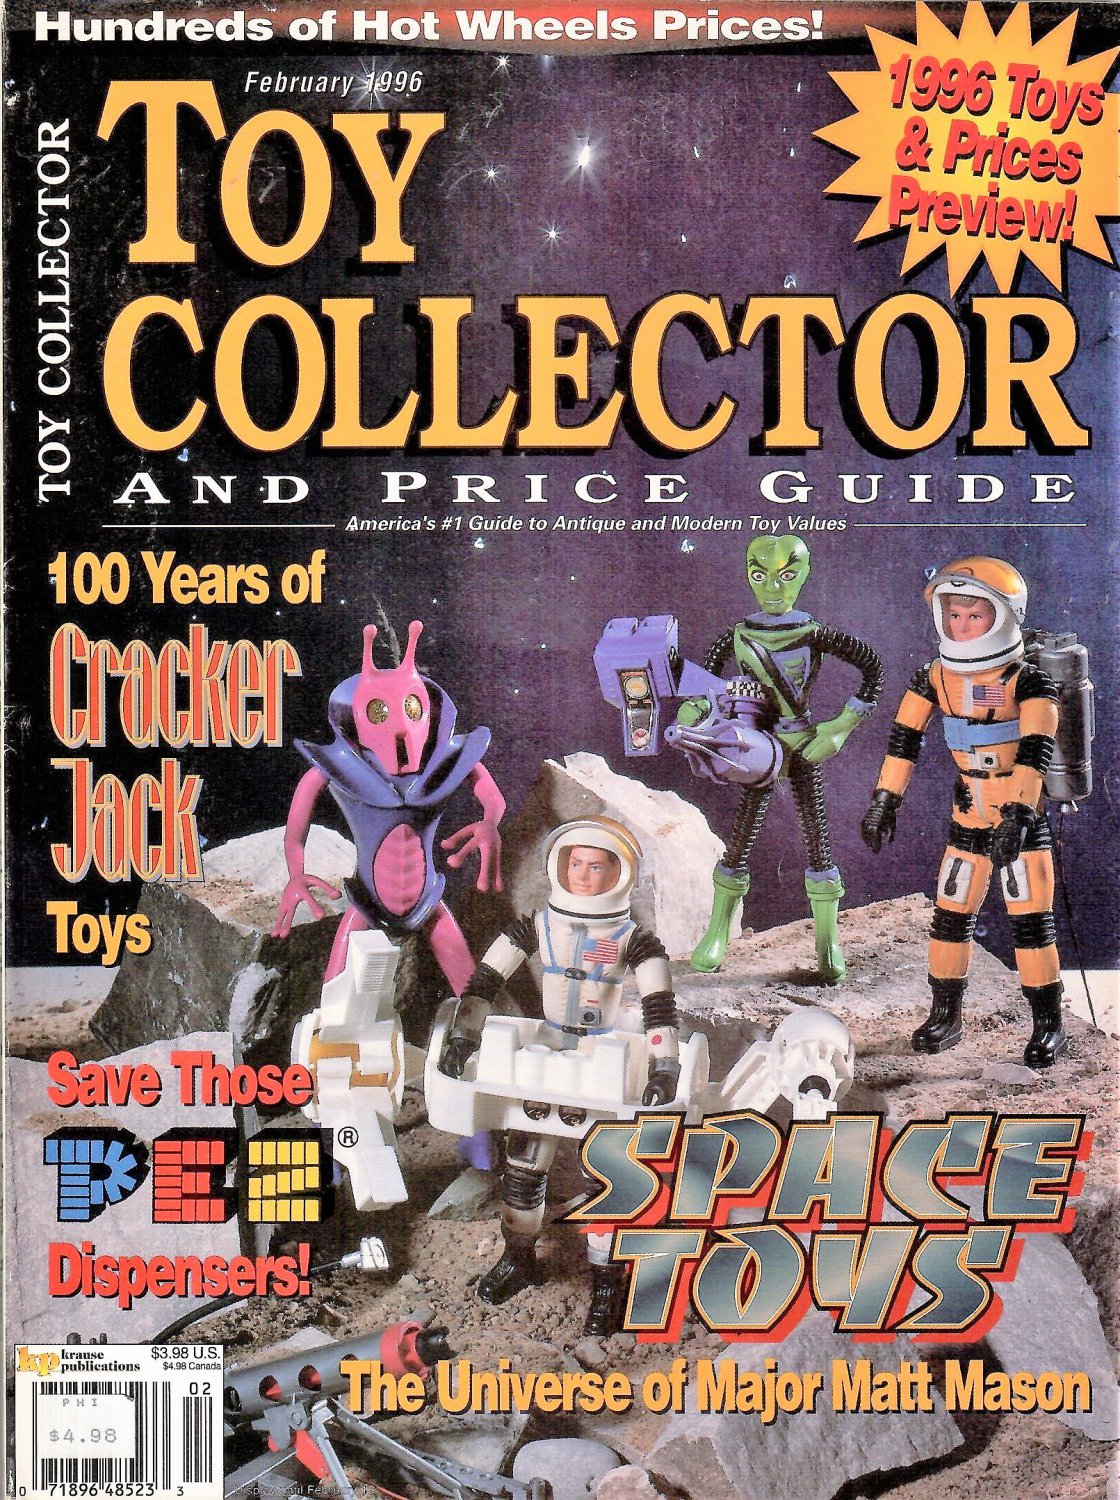 TOY COLLECTOR AND PRICE GUIDE MAGAZINE February 1996 PEZ Cracker Jack SPACE TOYS